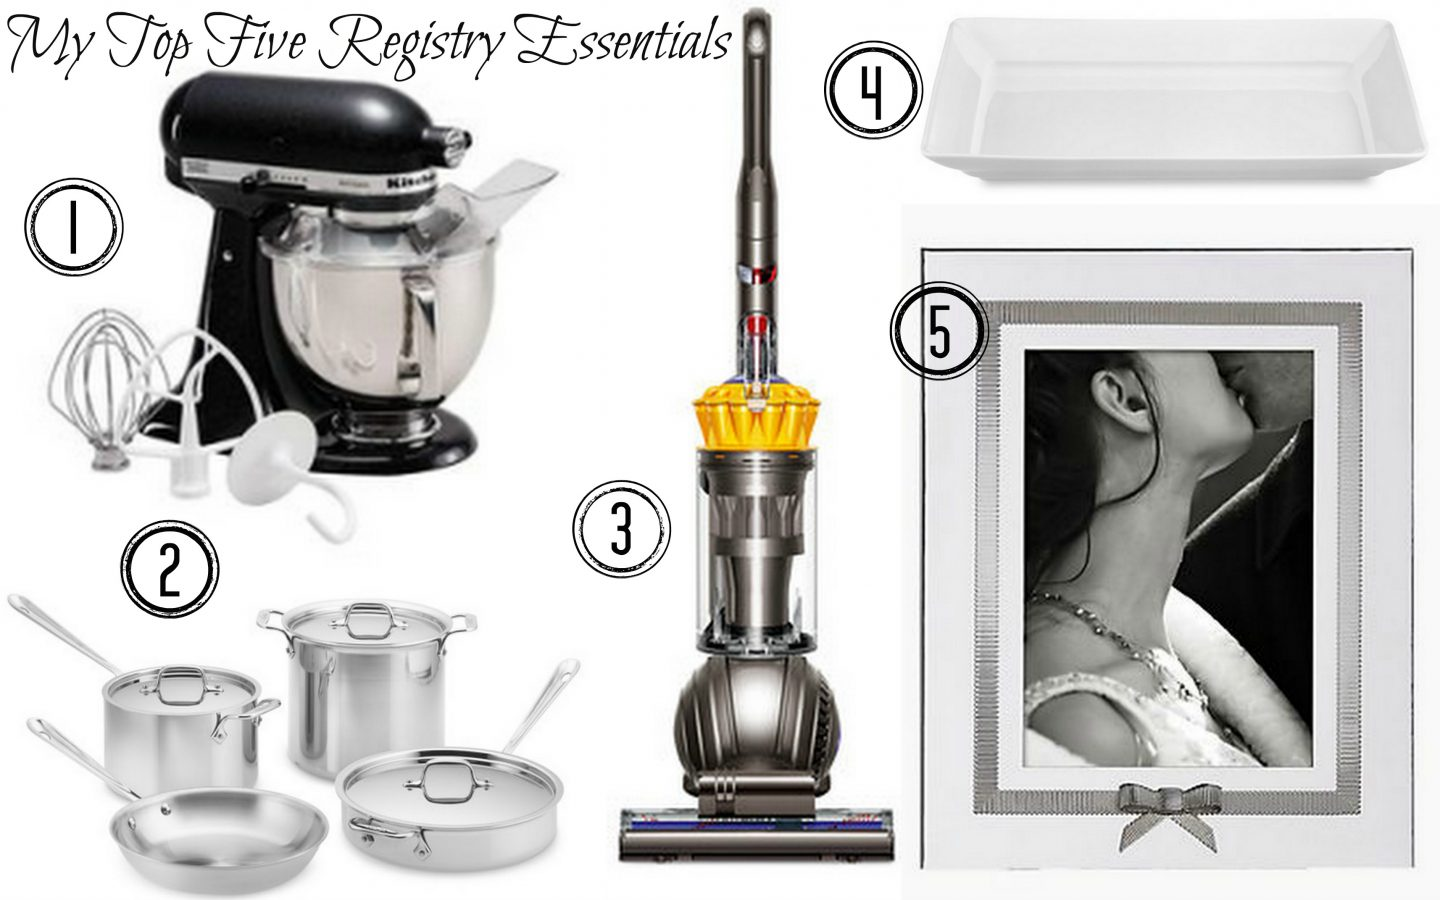 My Top Five Wedding Registry Essentials